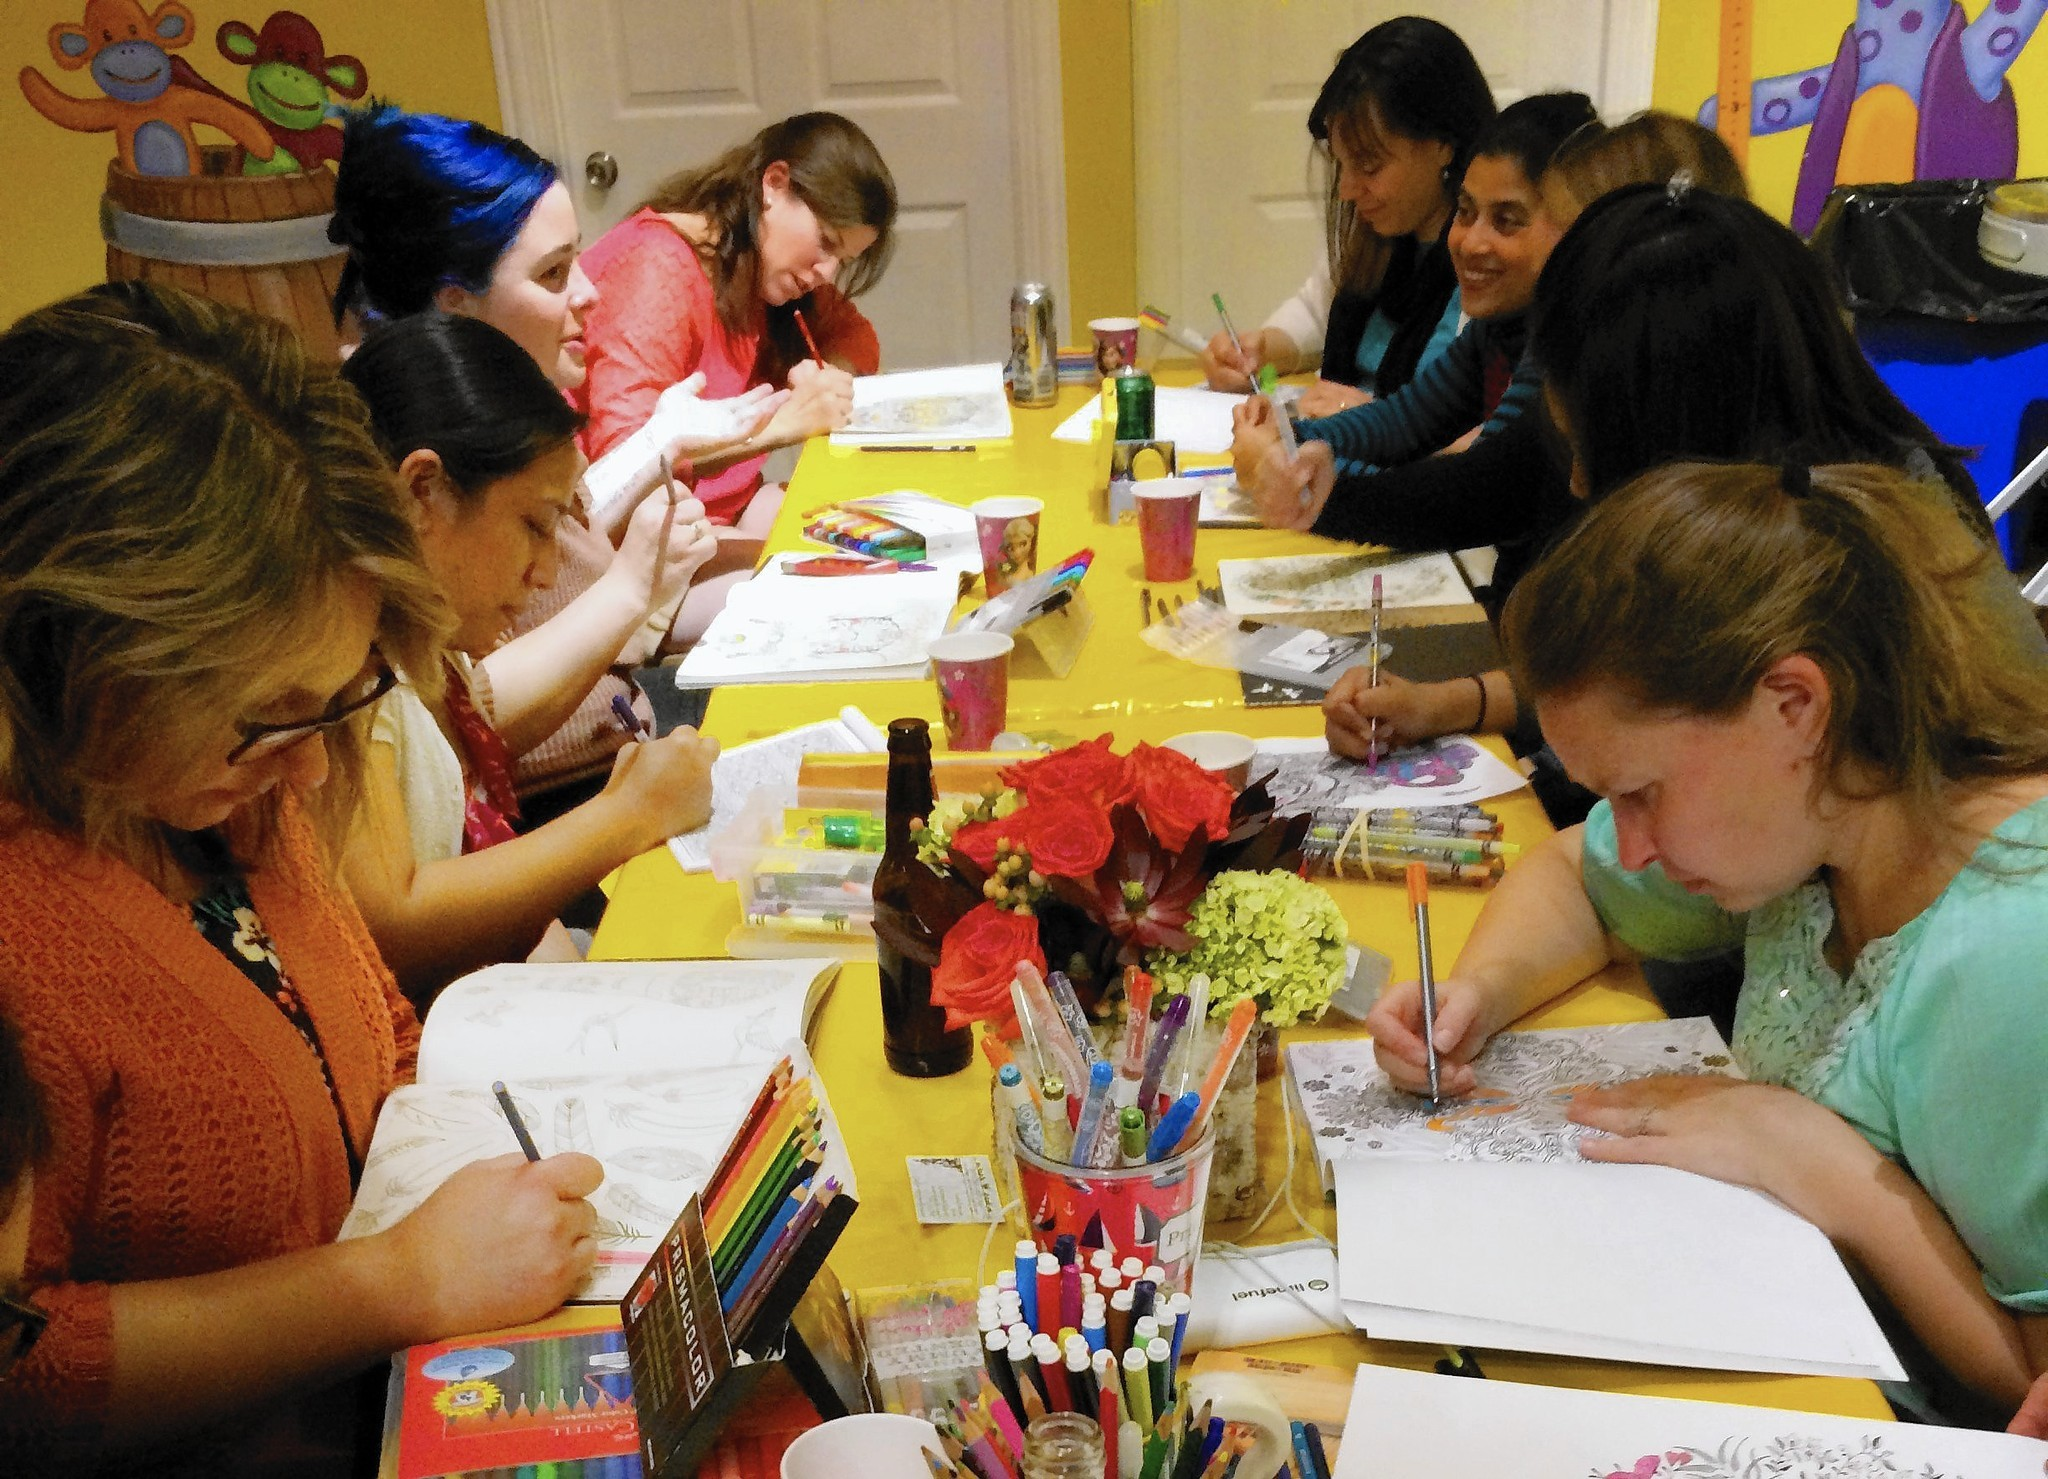 Adults are coloring again, and sales of coloring books for grownups soar